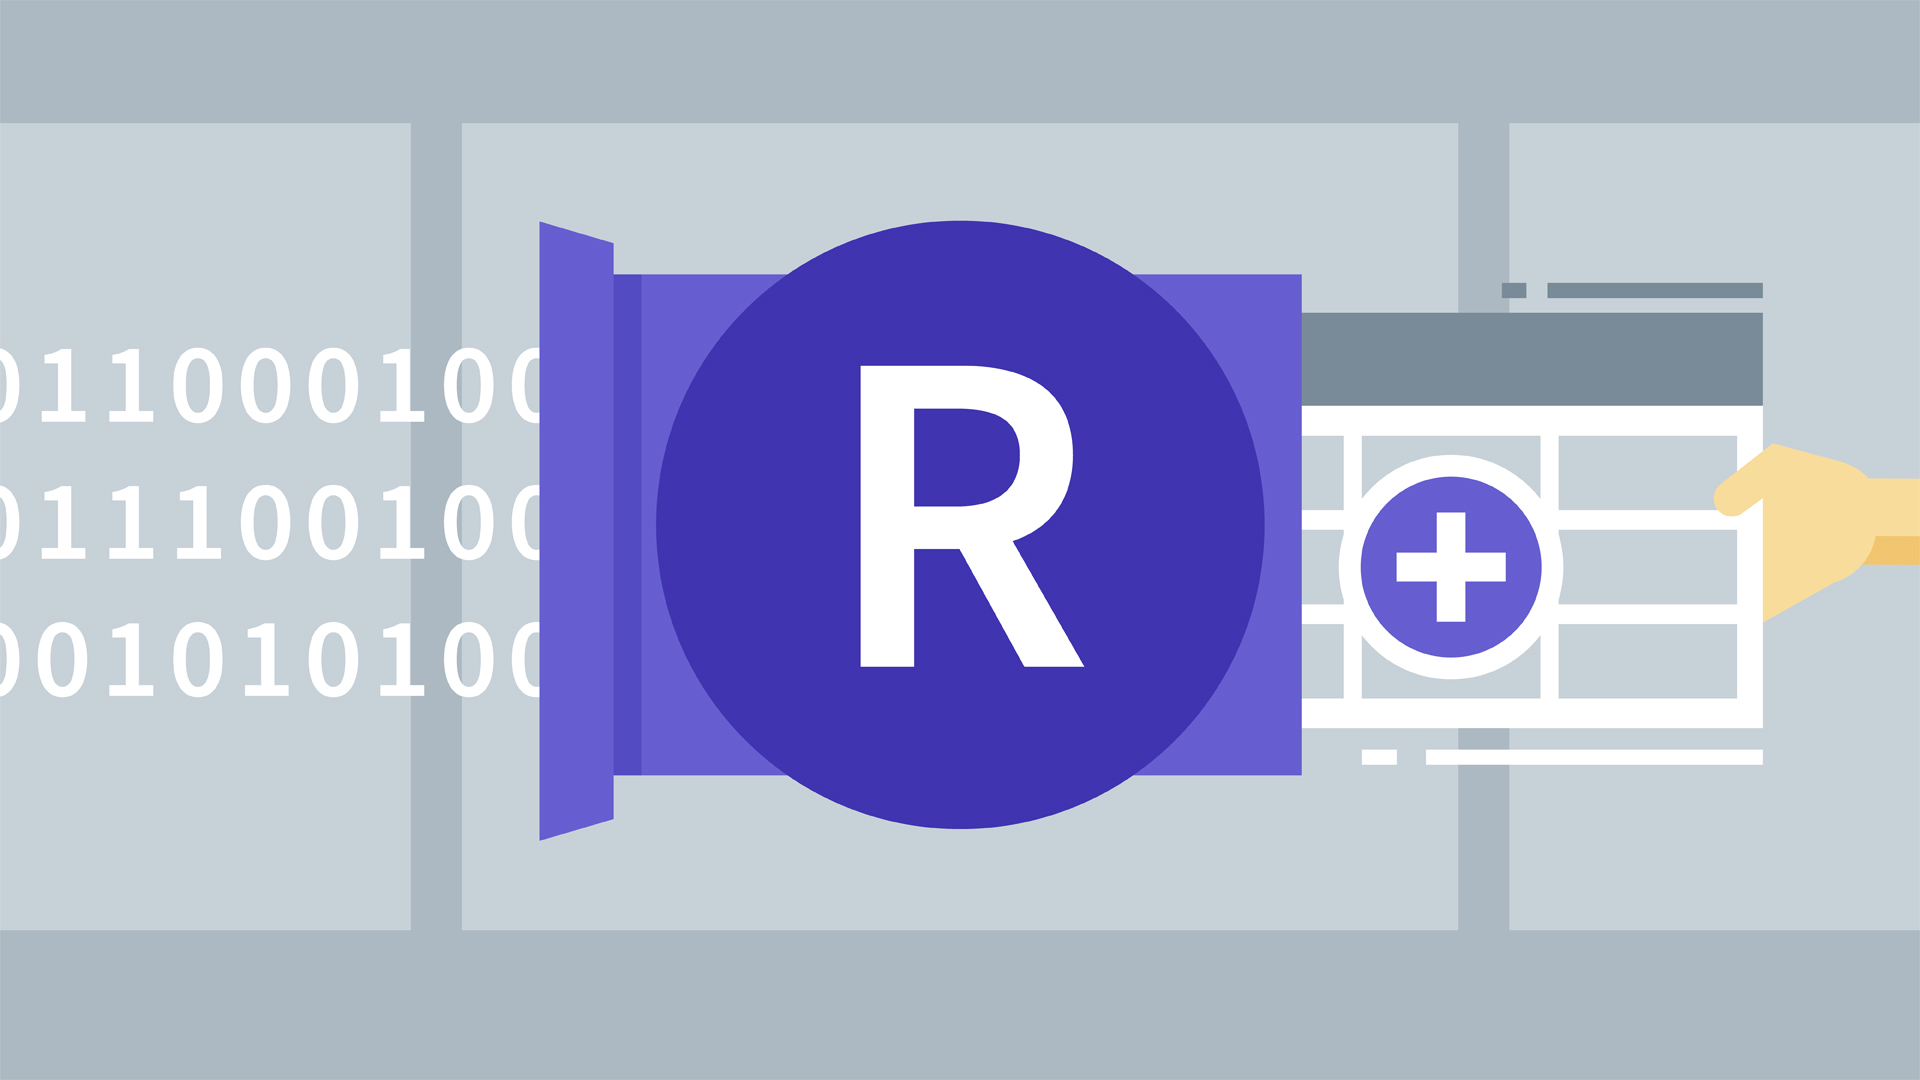 Healthcare Analytics: Regression in R